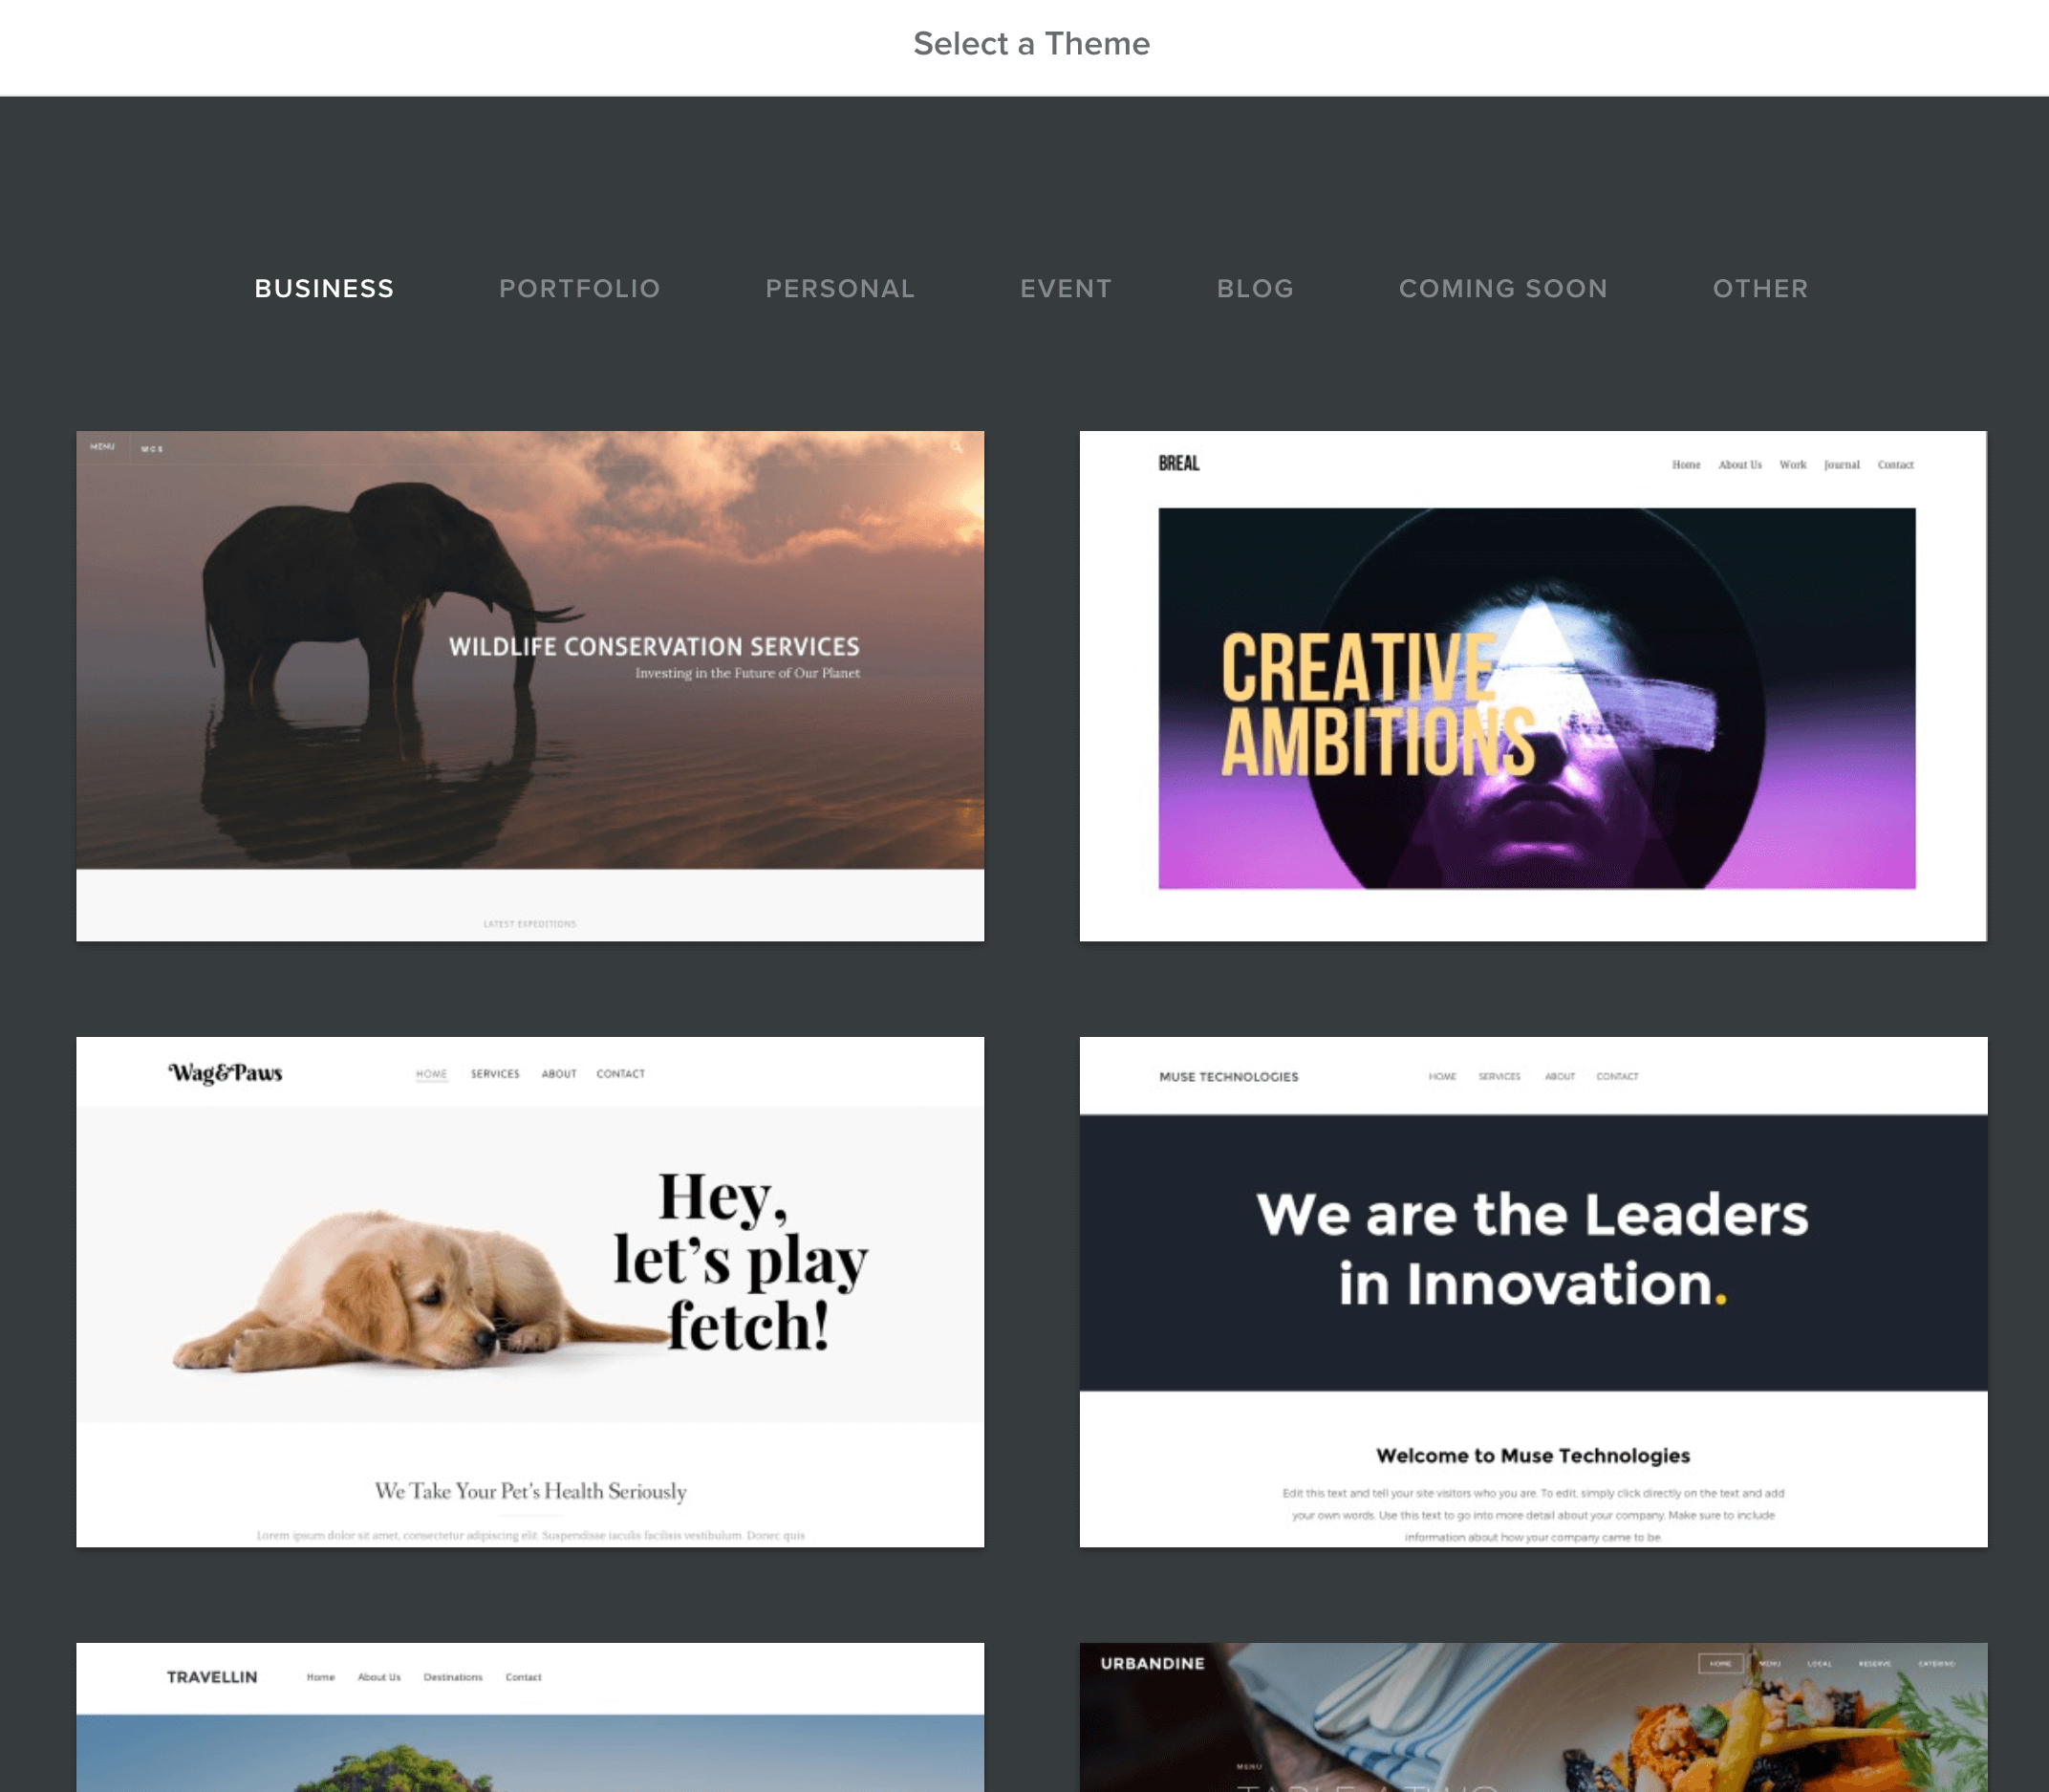 Weebly onboarding theme selection